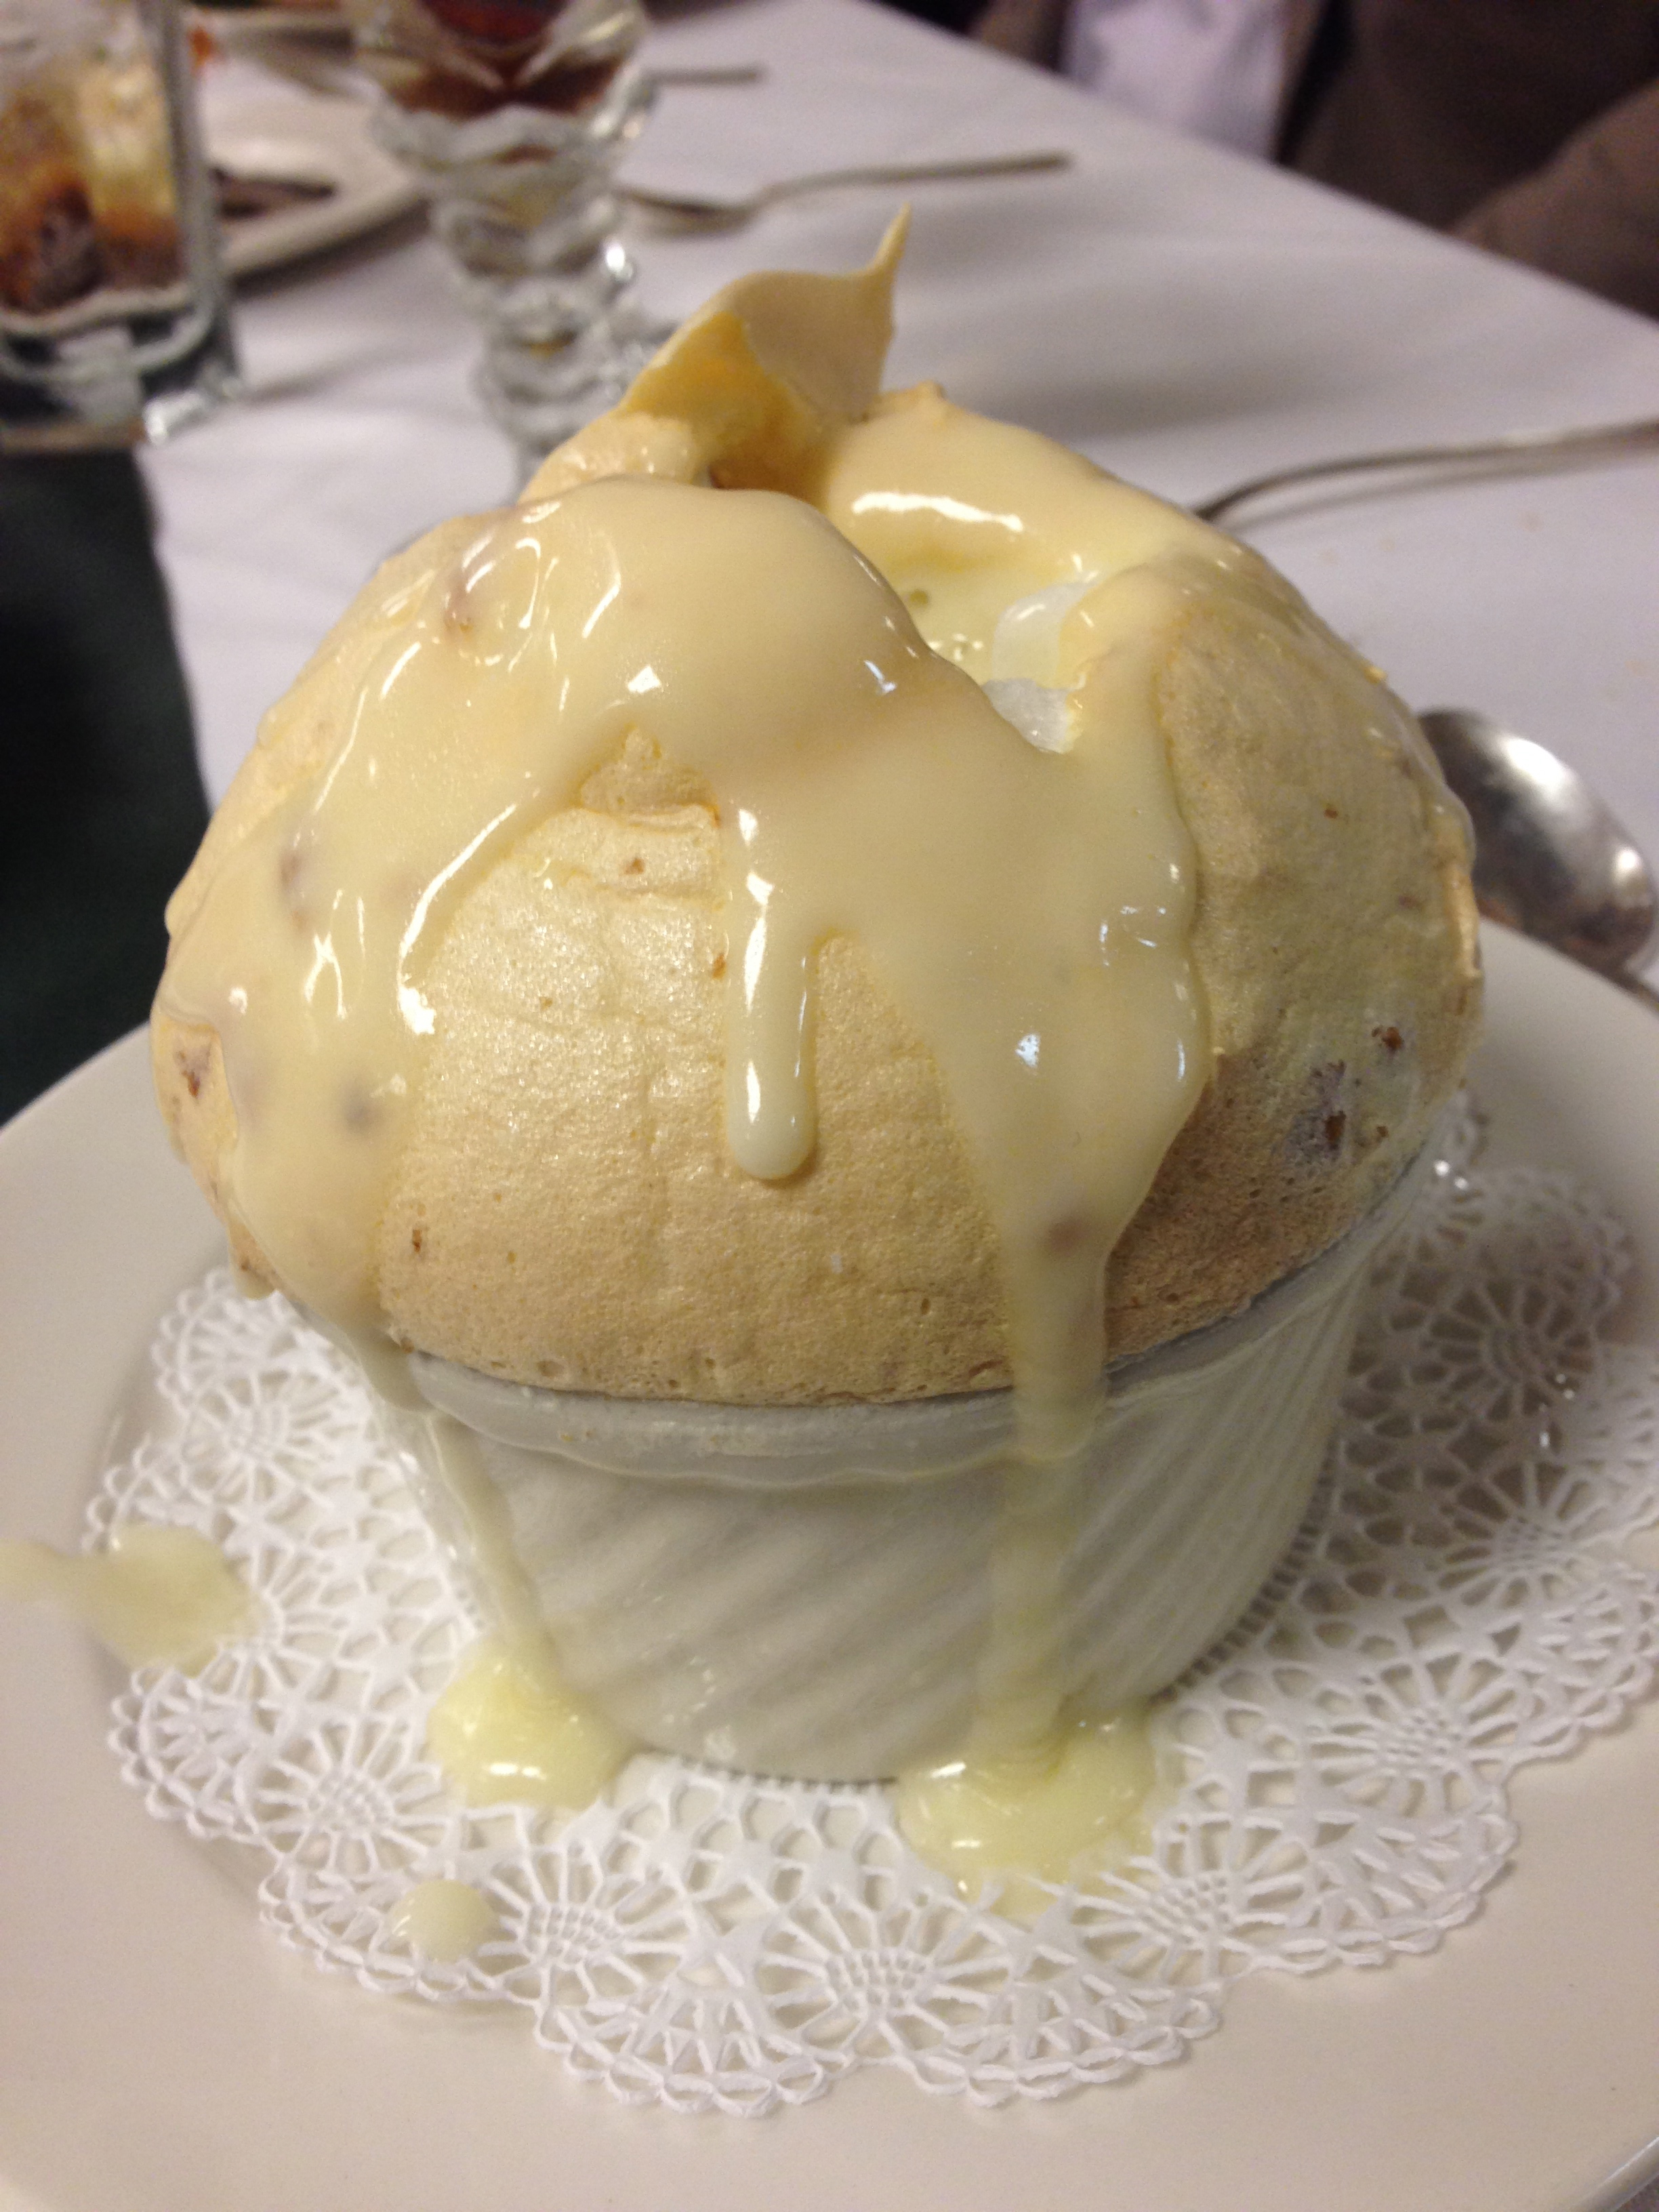 ... Bread Pudding Souffle with Warm Whiskey Sauce at Commander's Palace